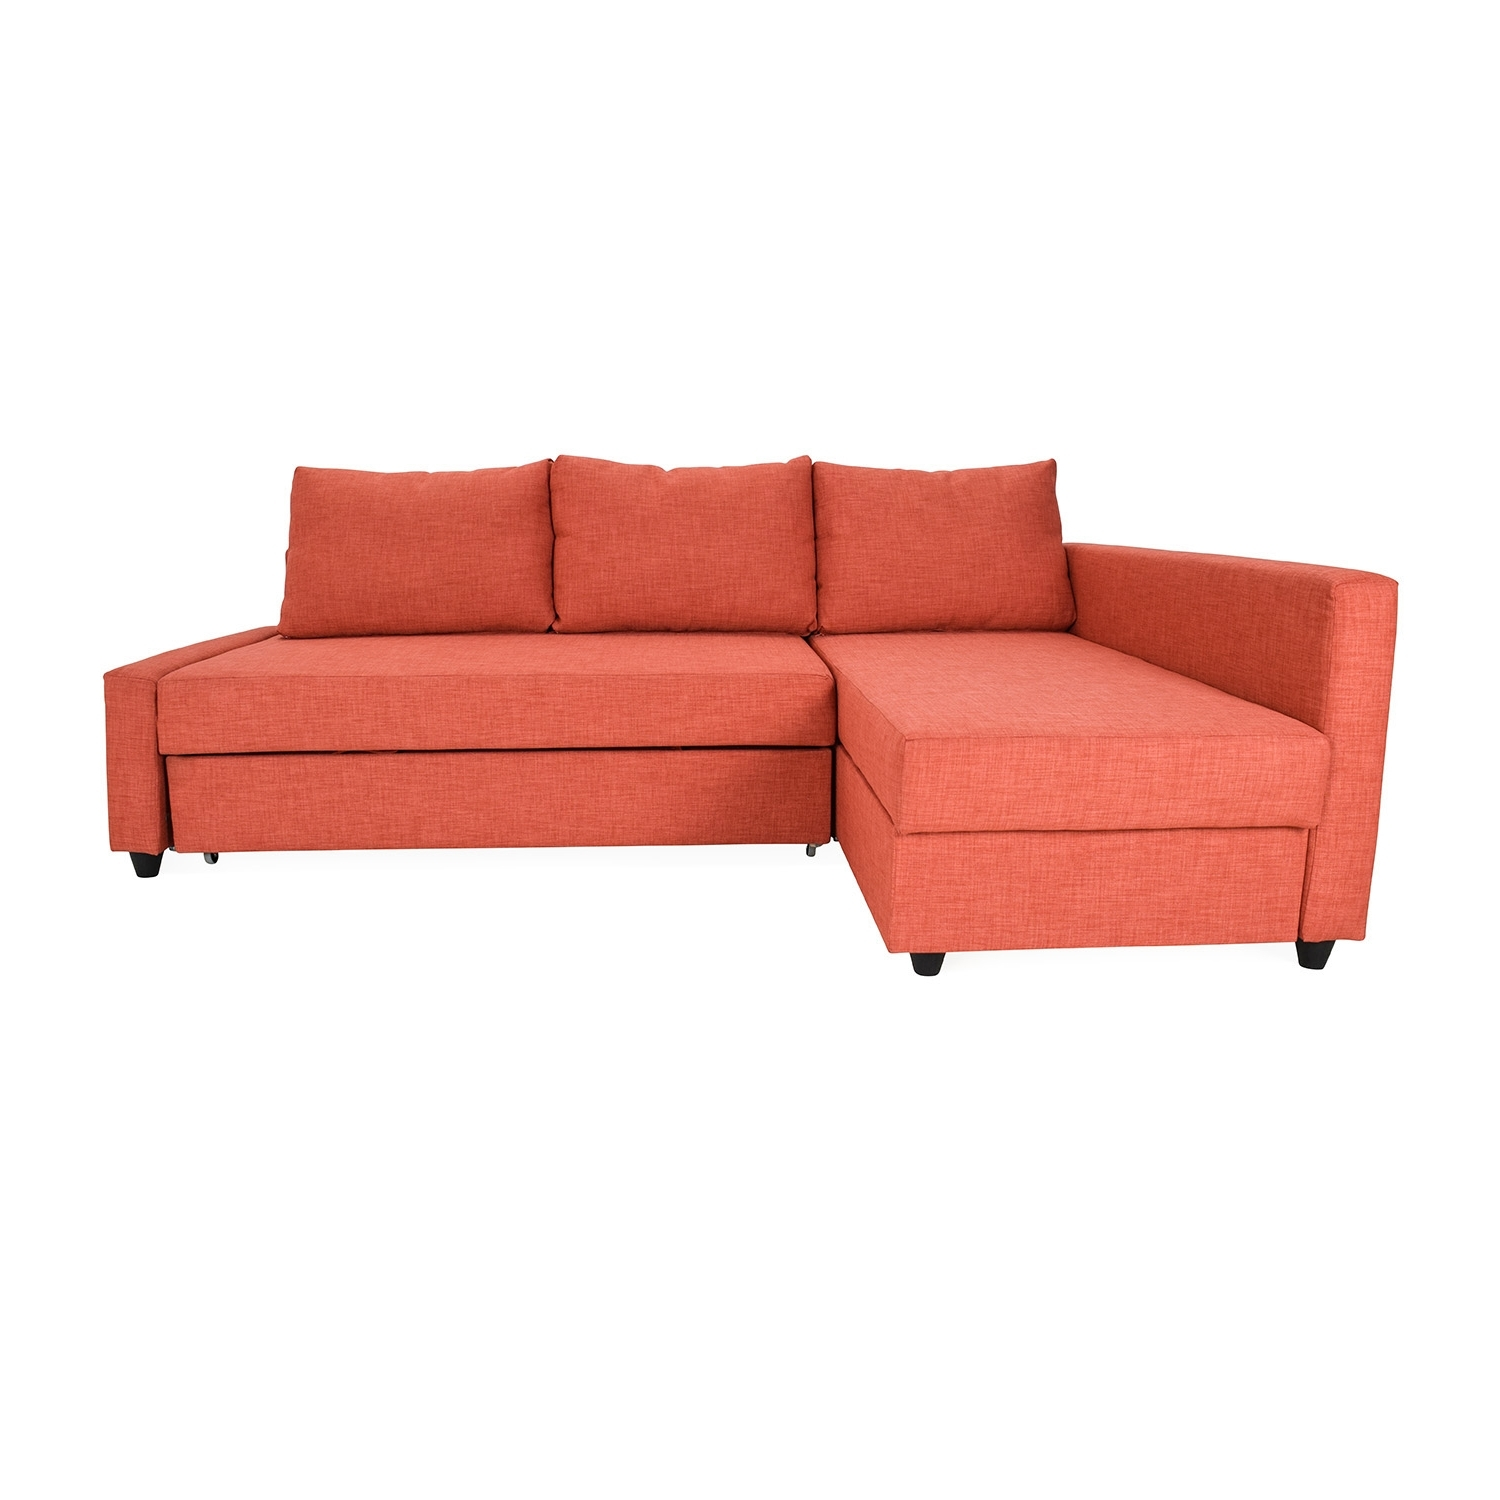 [%49% Off – Ikea Friheten Sofa Bed With Chaise / Sofas In Fashionable Ikea Chaise Sofas|Ikea Chaise Sofas Throughout Latest 49% Off – Ikea Friheten Sofa Bed With Chaise / Sofas|Fashionable Ikea Chaise Sofas Within 49% Off – Ikea Friheten Sofa Bed With Chaise / Sofas|2018 49% Off – Ikea Friheten Sofa Bed With Chaise / Sofas Inside Ikea Chaise Sofas%] (View 11 of 15)